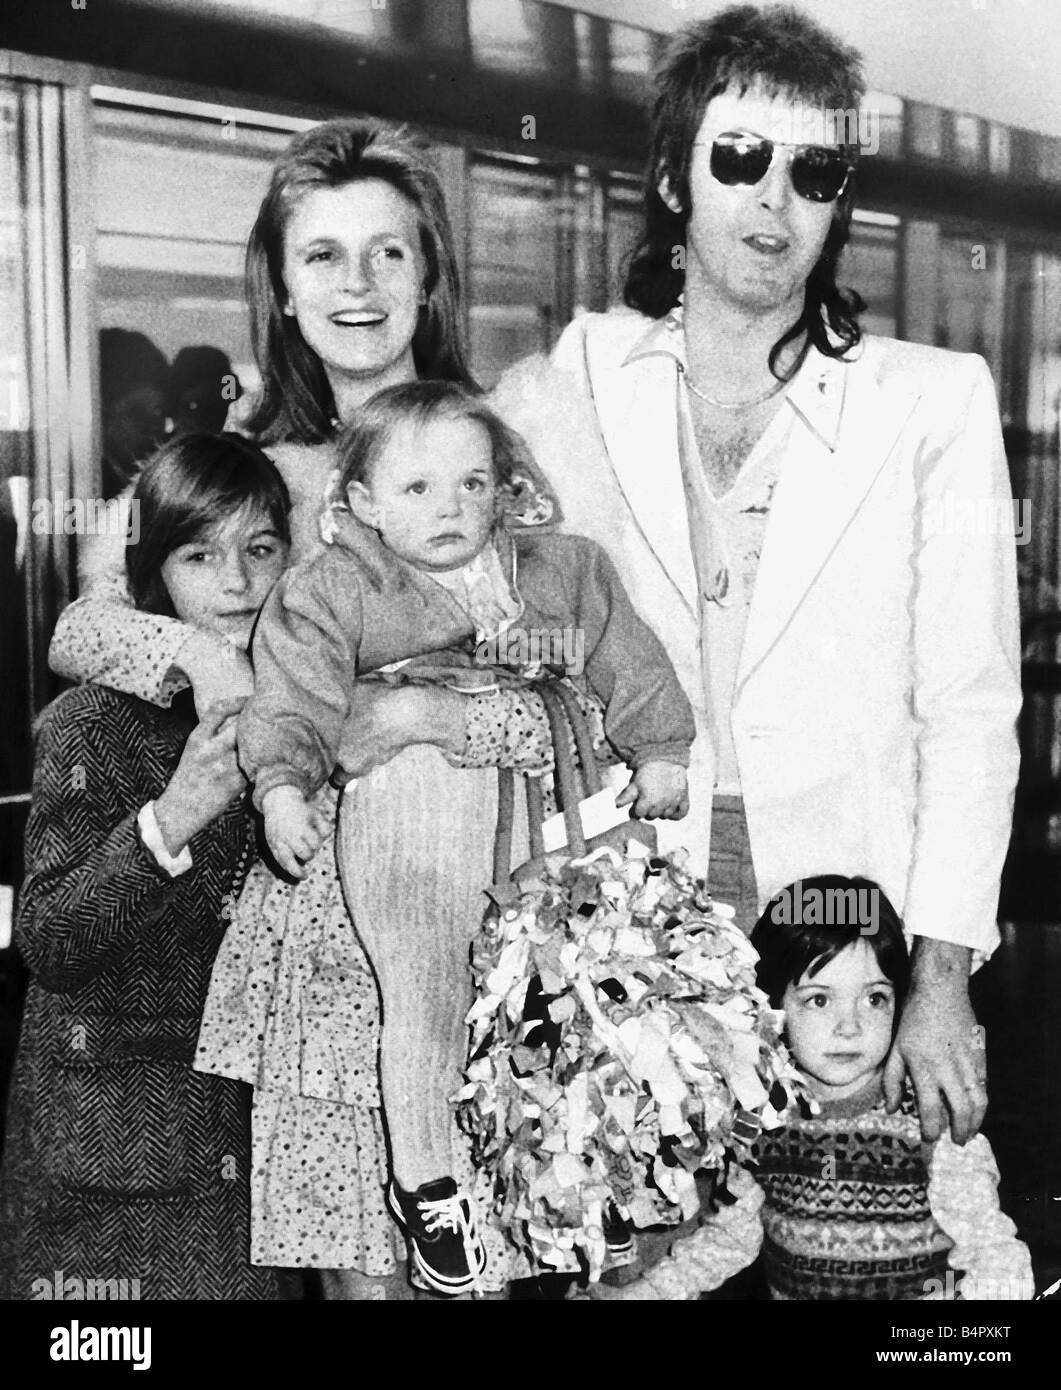 Linda McCartney Photographer With Husband Paul Singer And Their Children Heather Mary Stella On Way To Jamaica For A Holiday